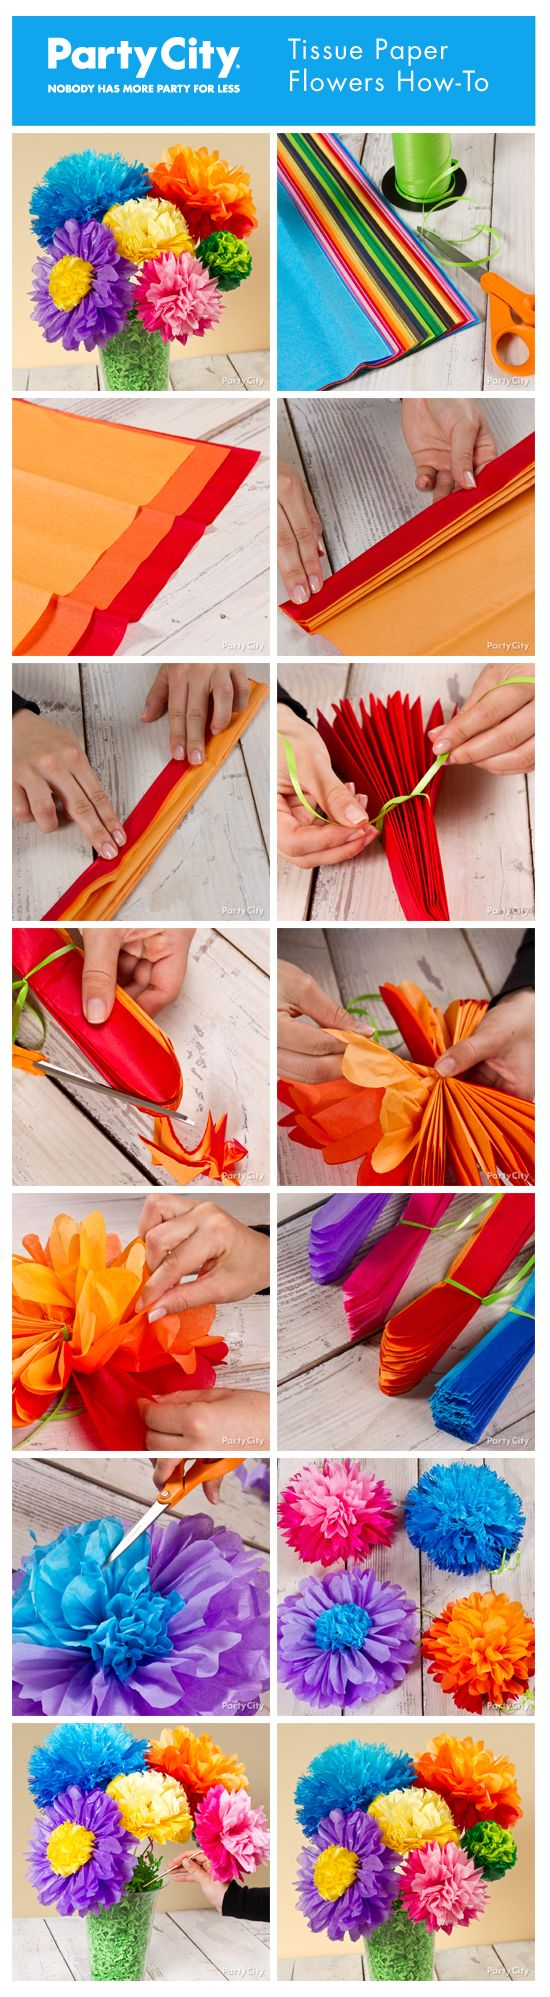 How To Make Pretty Tissue Paper Flowers Step By Step Photo Tutorial